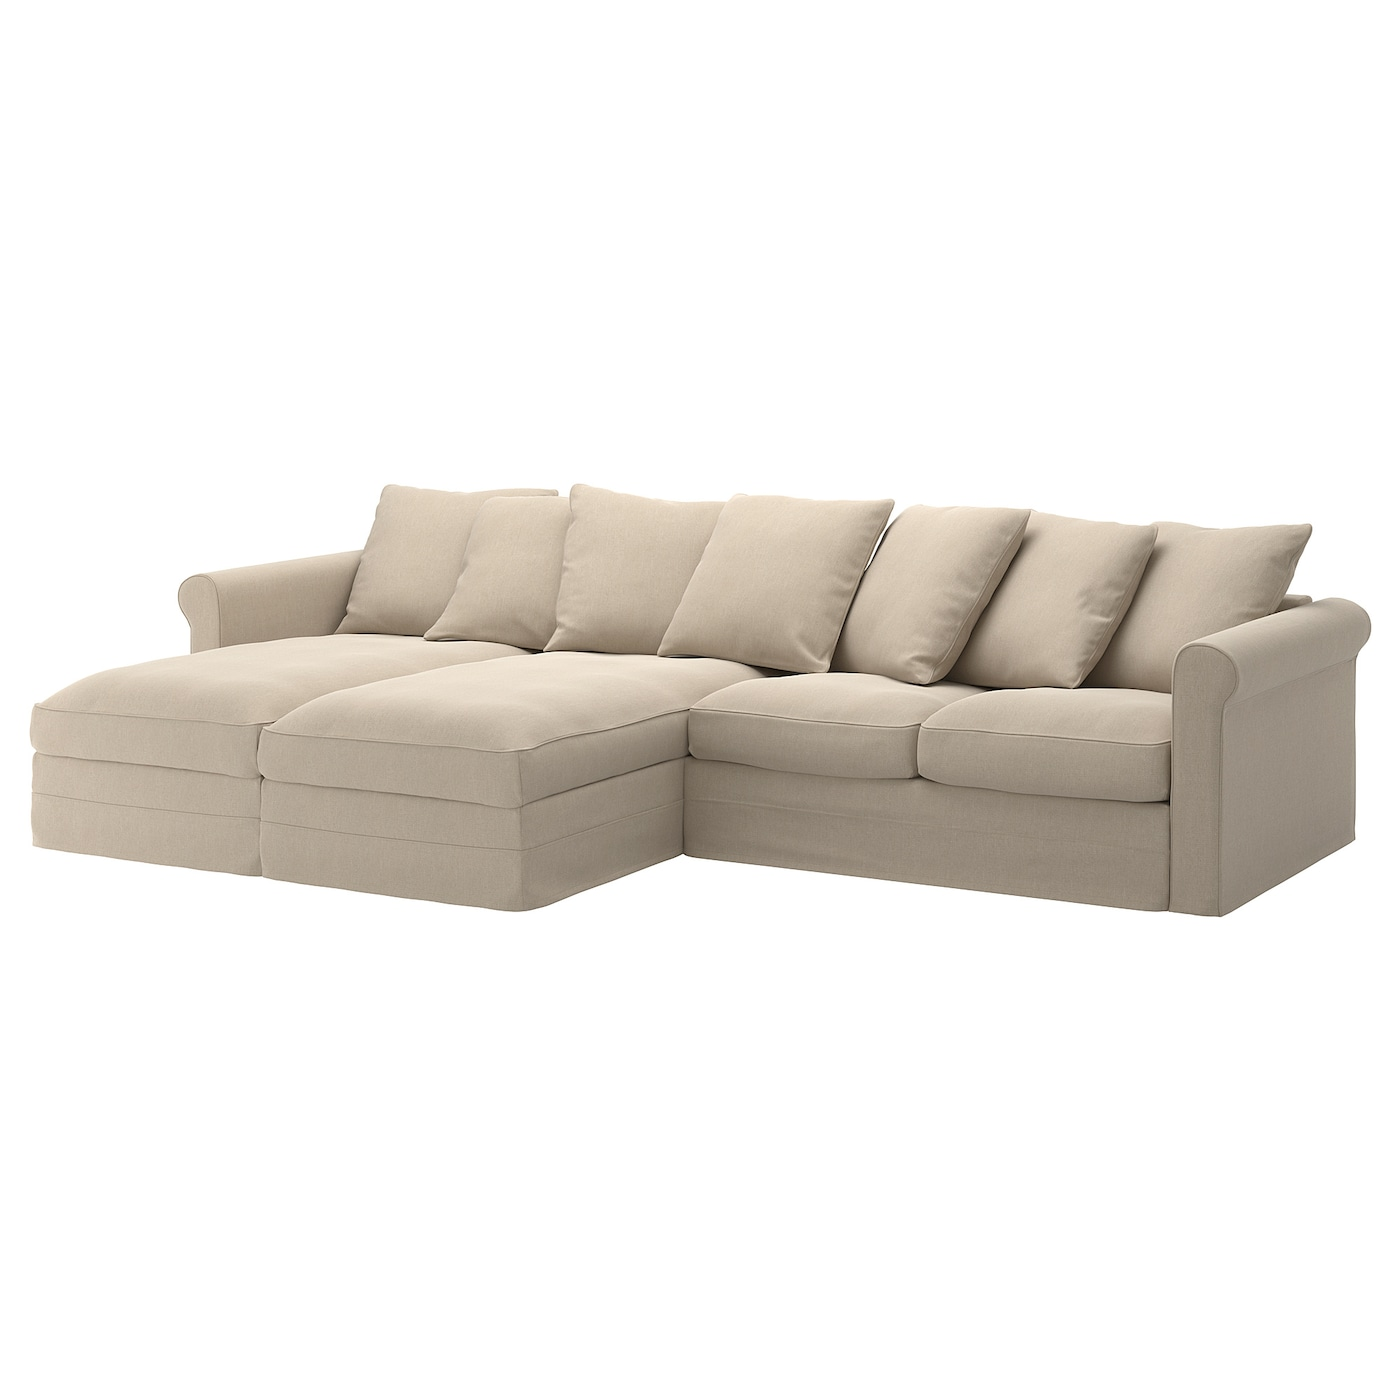 IKEA GRÖNLID 4-seat sofa The cover is easy to keep clean since it is removable and machine washable.